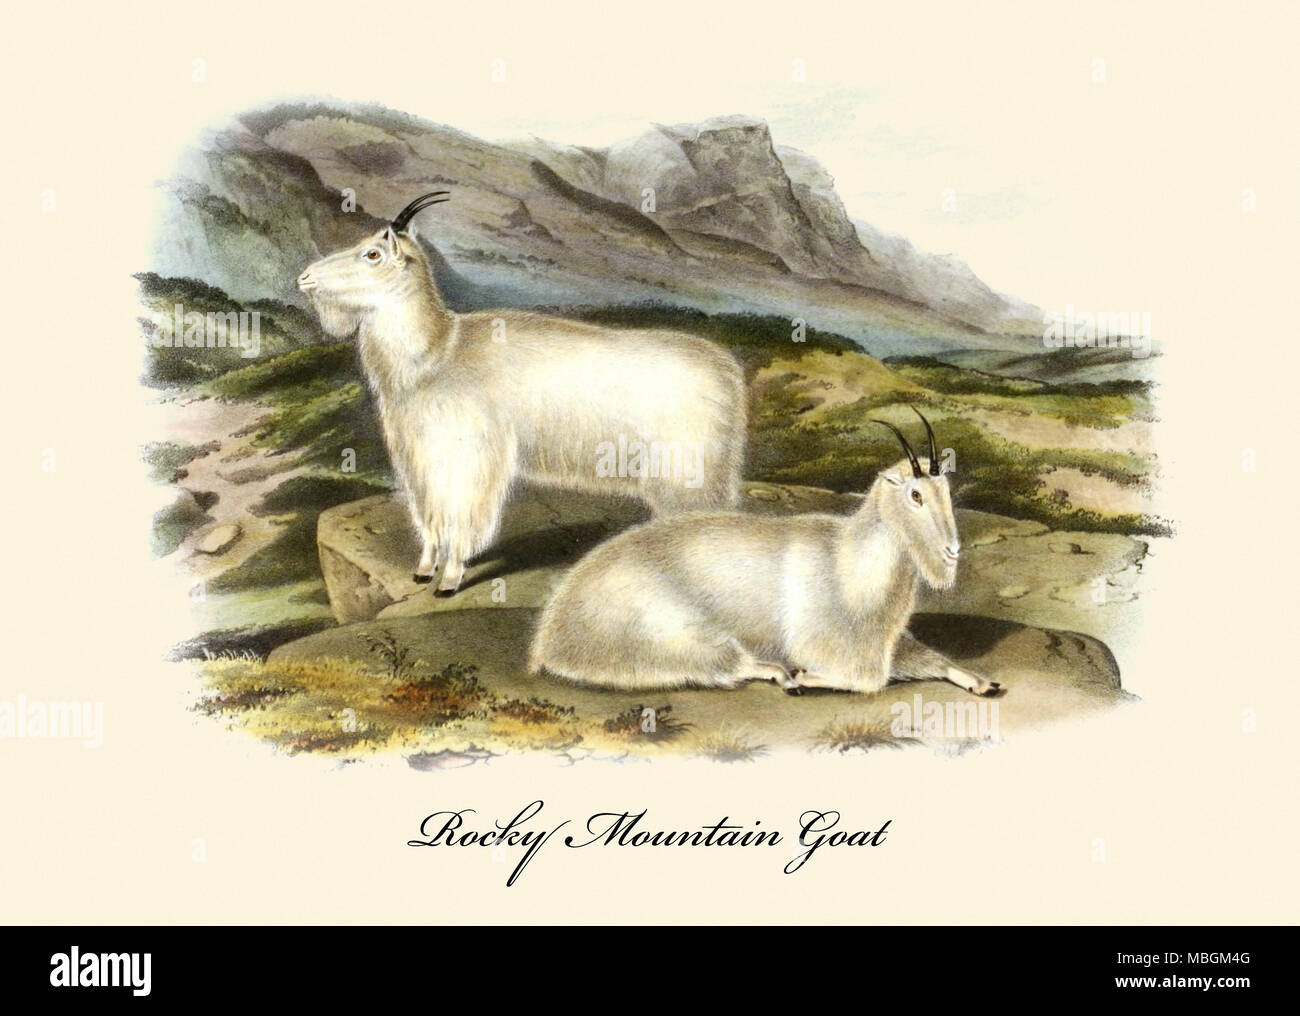 Rocky Mountain Goat - Stock Image